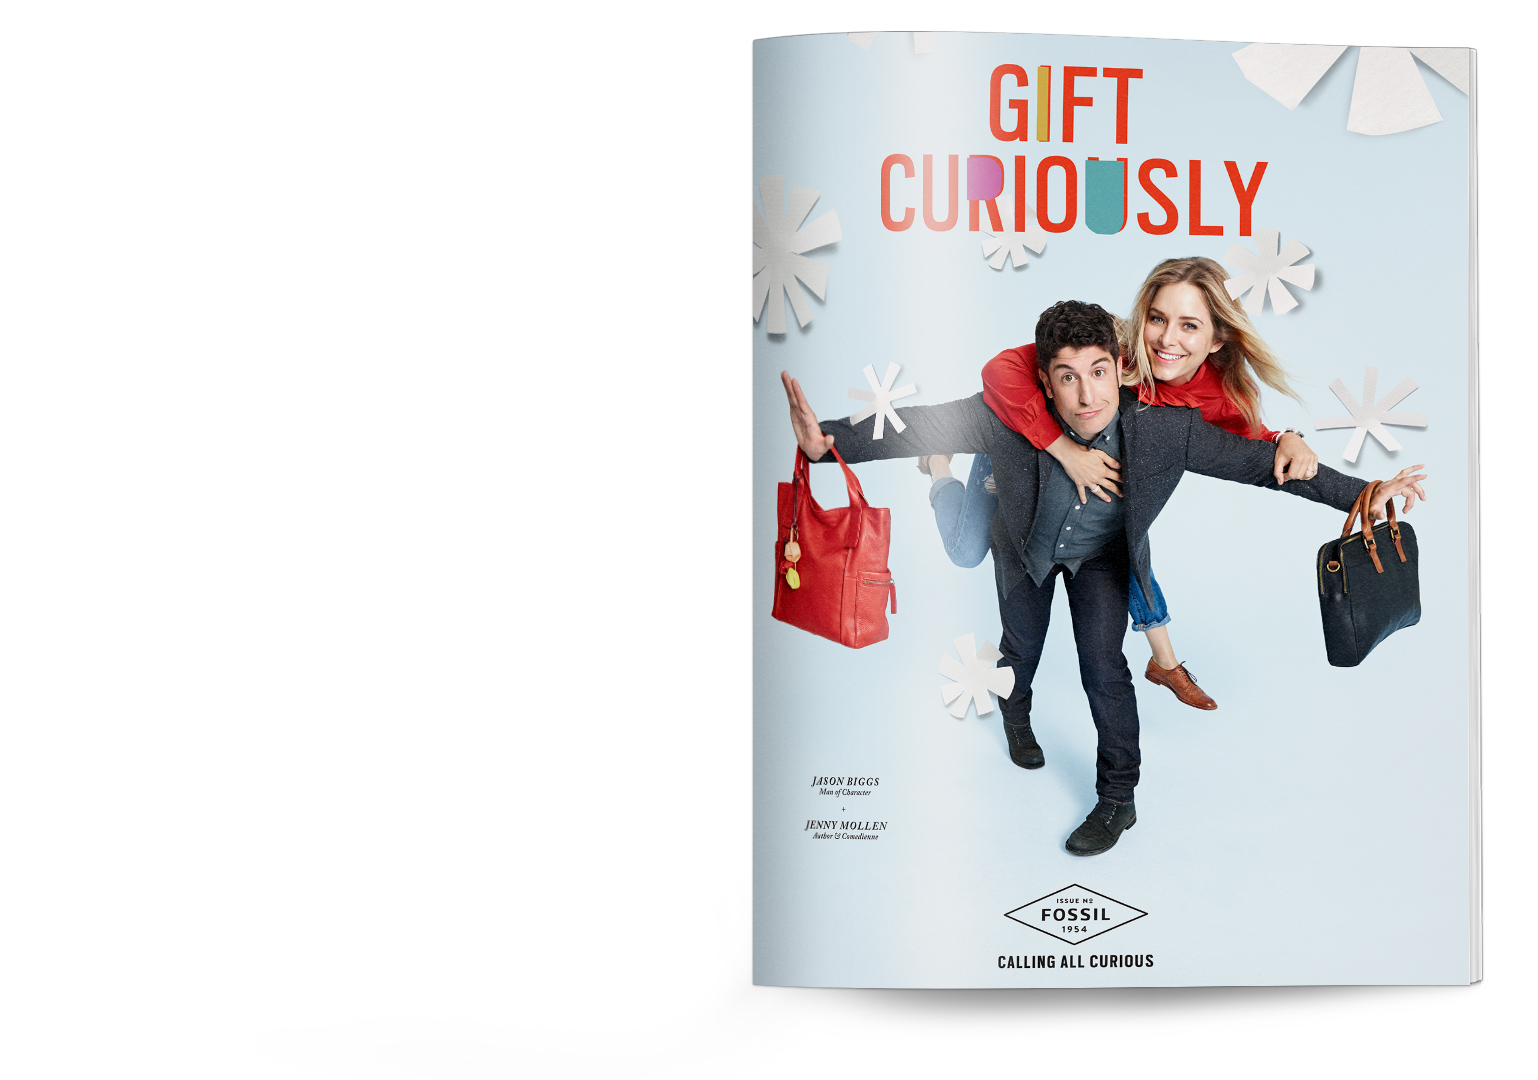 Fossil_Holiday_GiftGuide_1920x1080_1_FR1